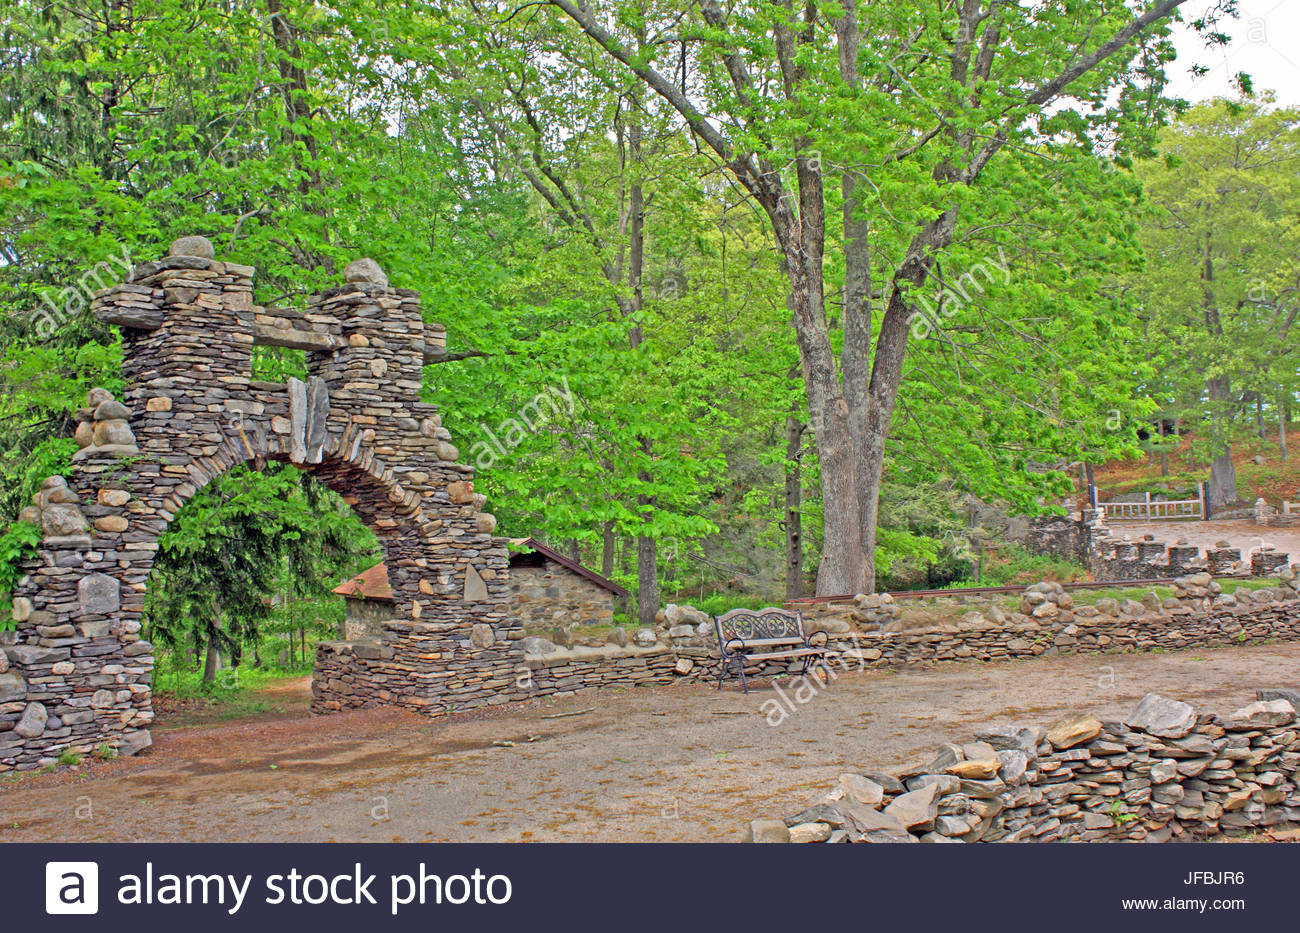 Stone walls, and a stone gate along the entrance road to Gillette Castle State Park. - Stock Image